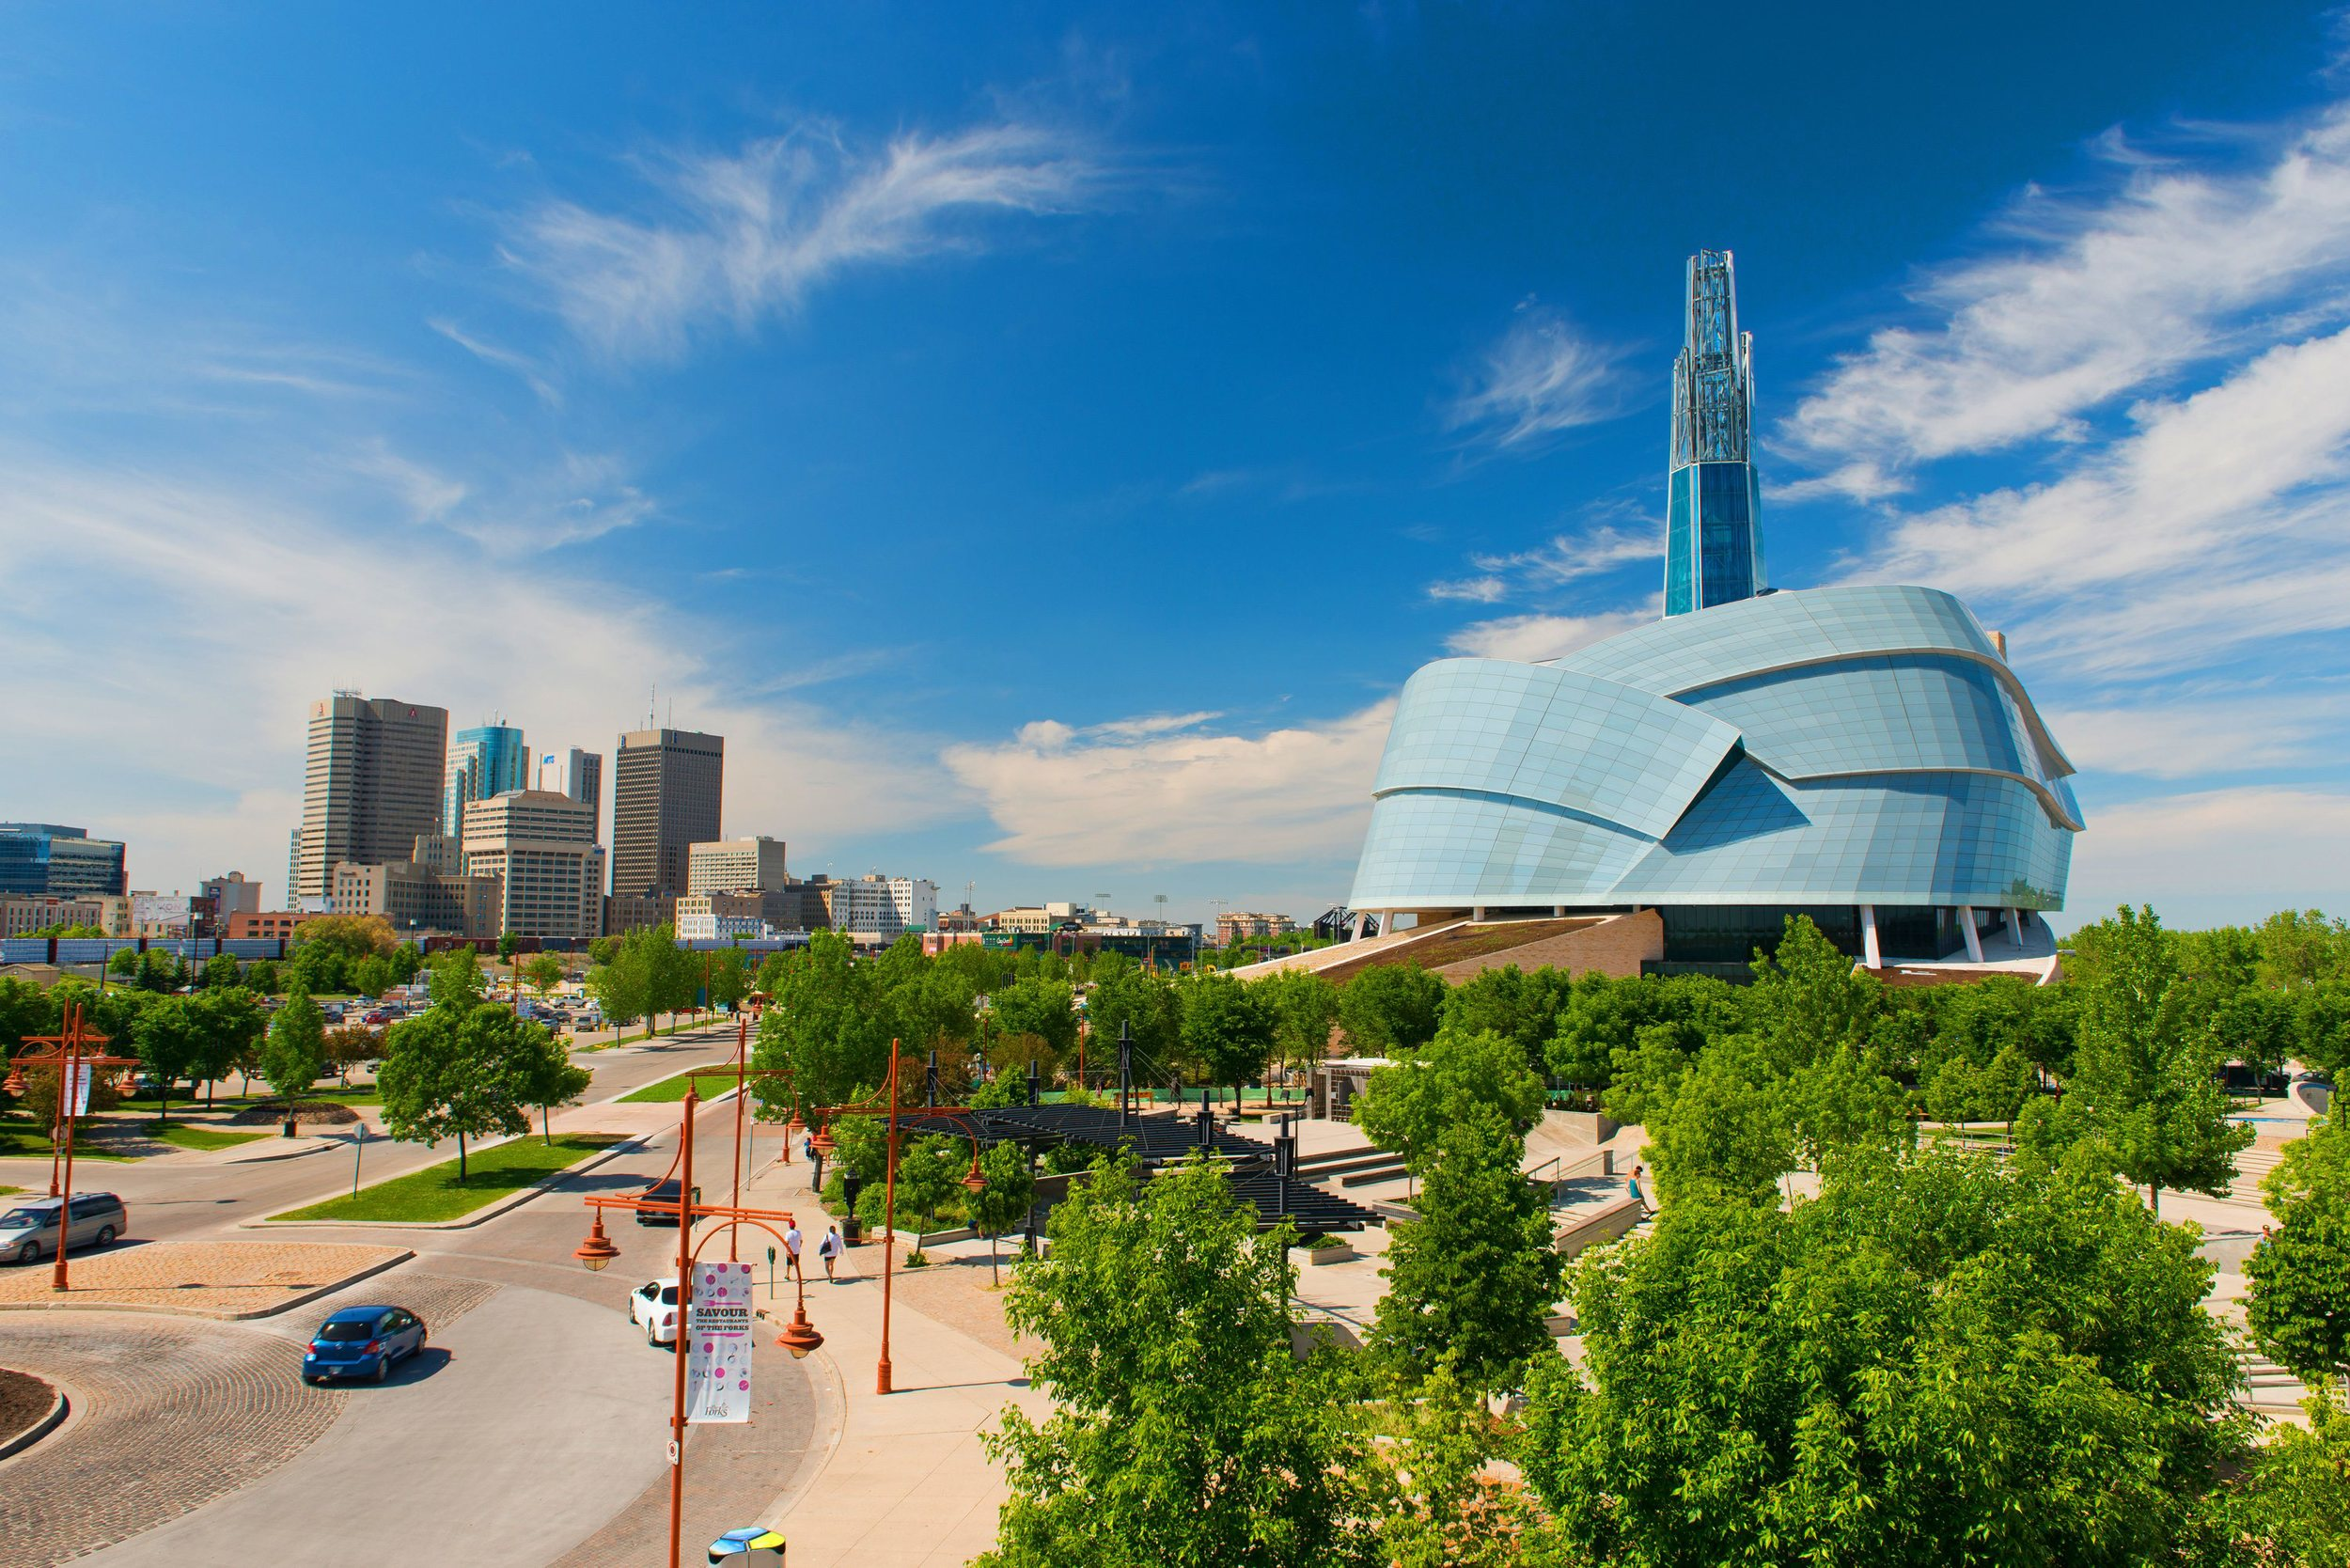 National Human Rights Museum, Winnipeg, Manitoba (cost: $351 million)